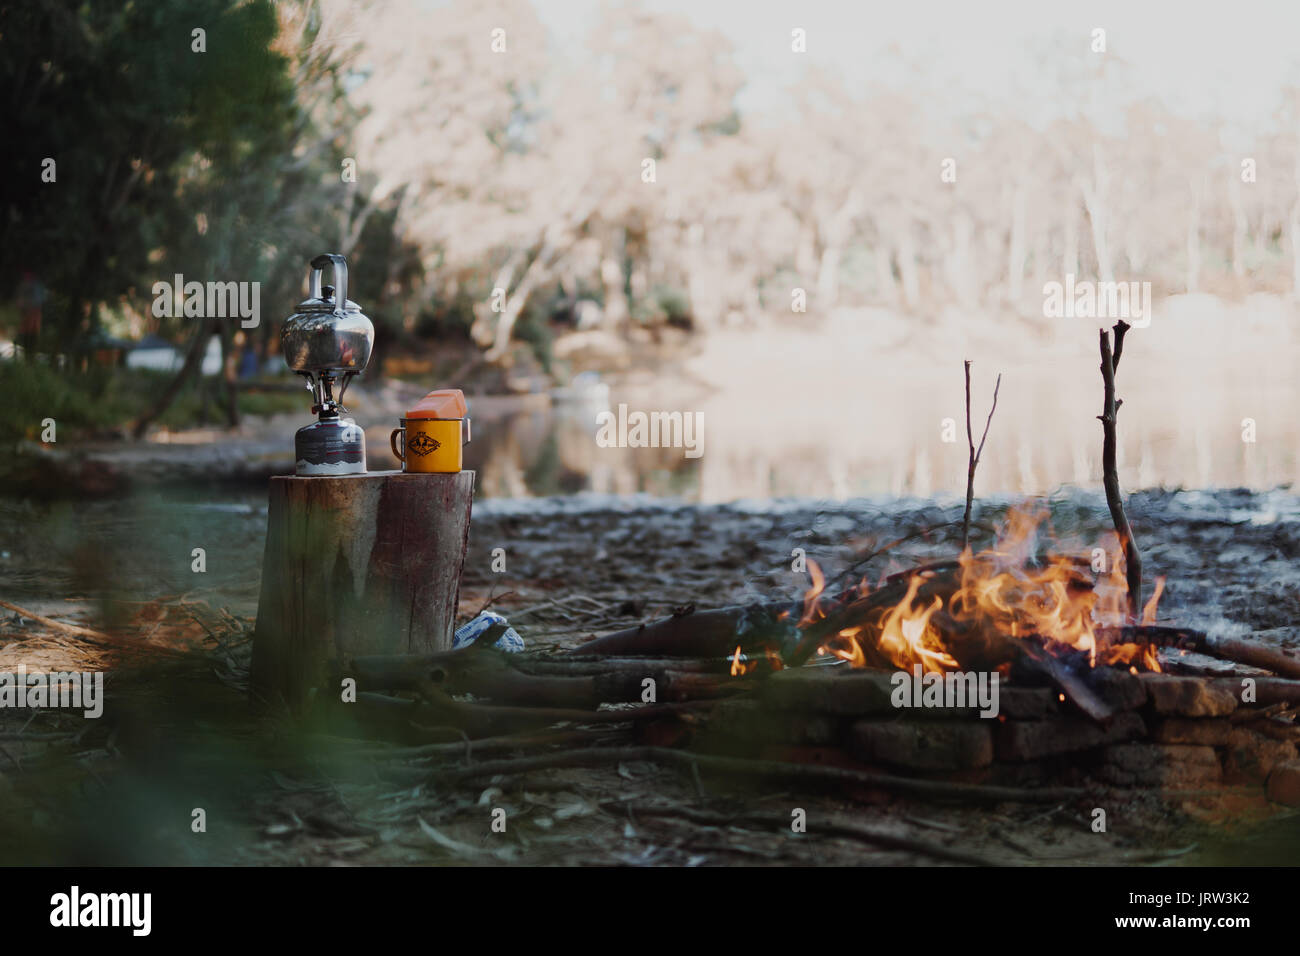 Morning campfire by the Murray River in the golden light with the camp stove making a coffee. - Stock Image